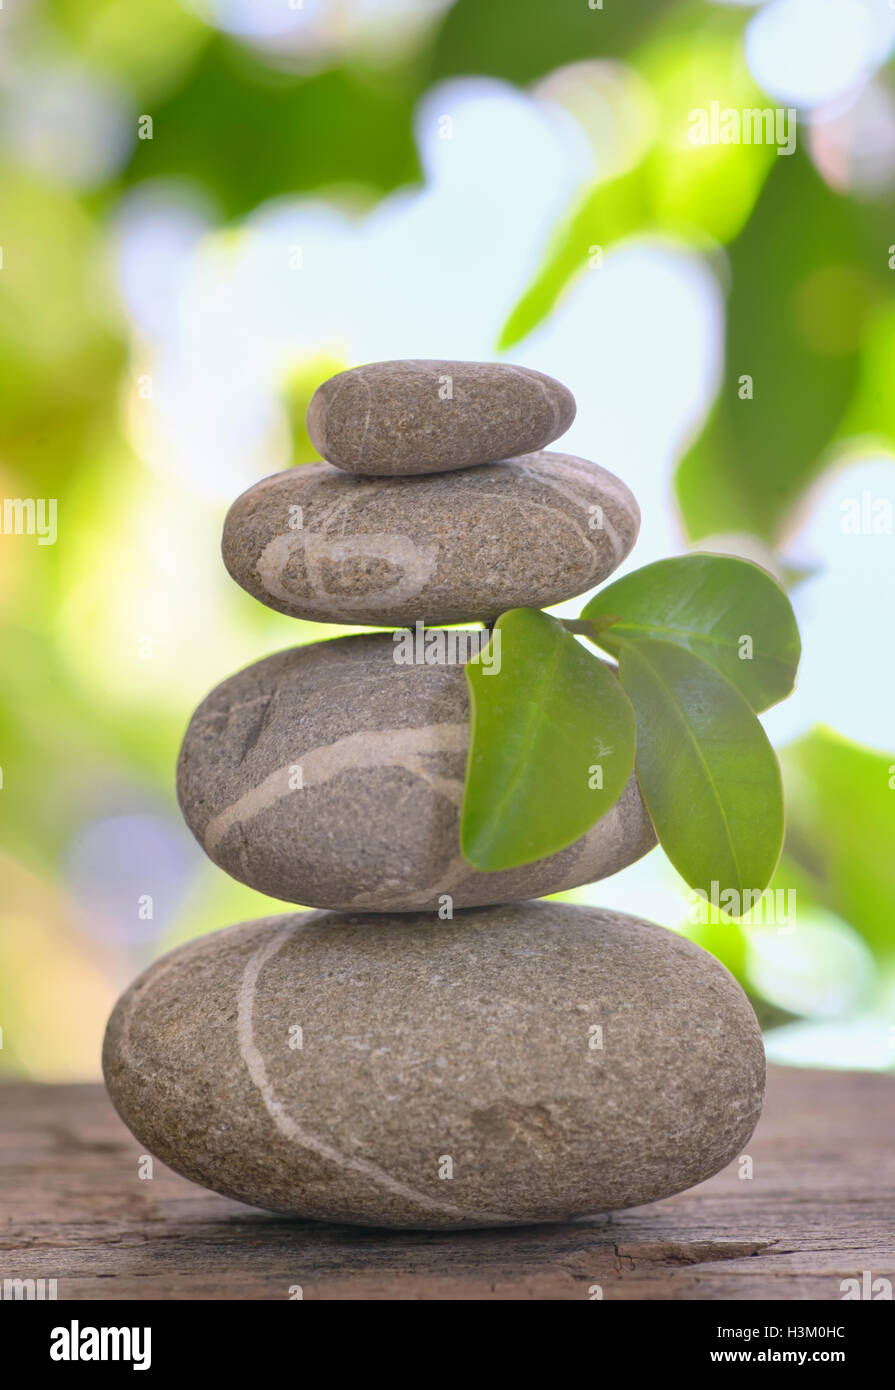 Balanced pebbles isolated on wooden table - Stock Image